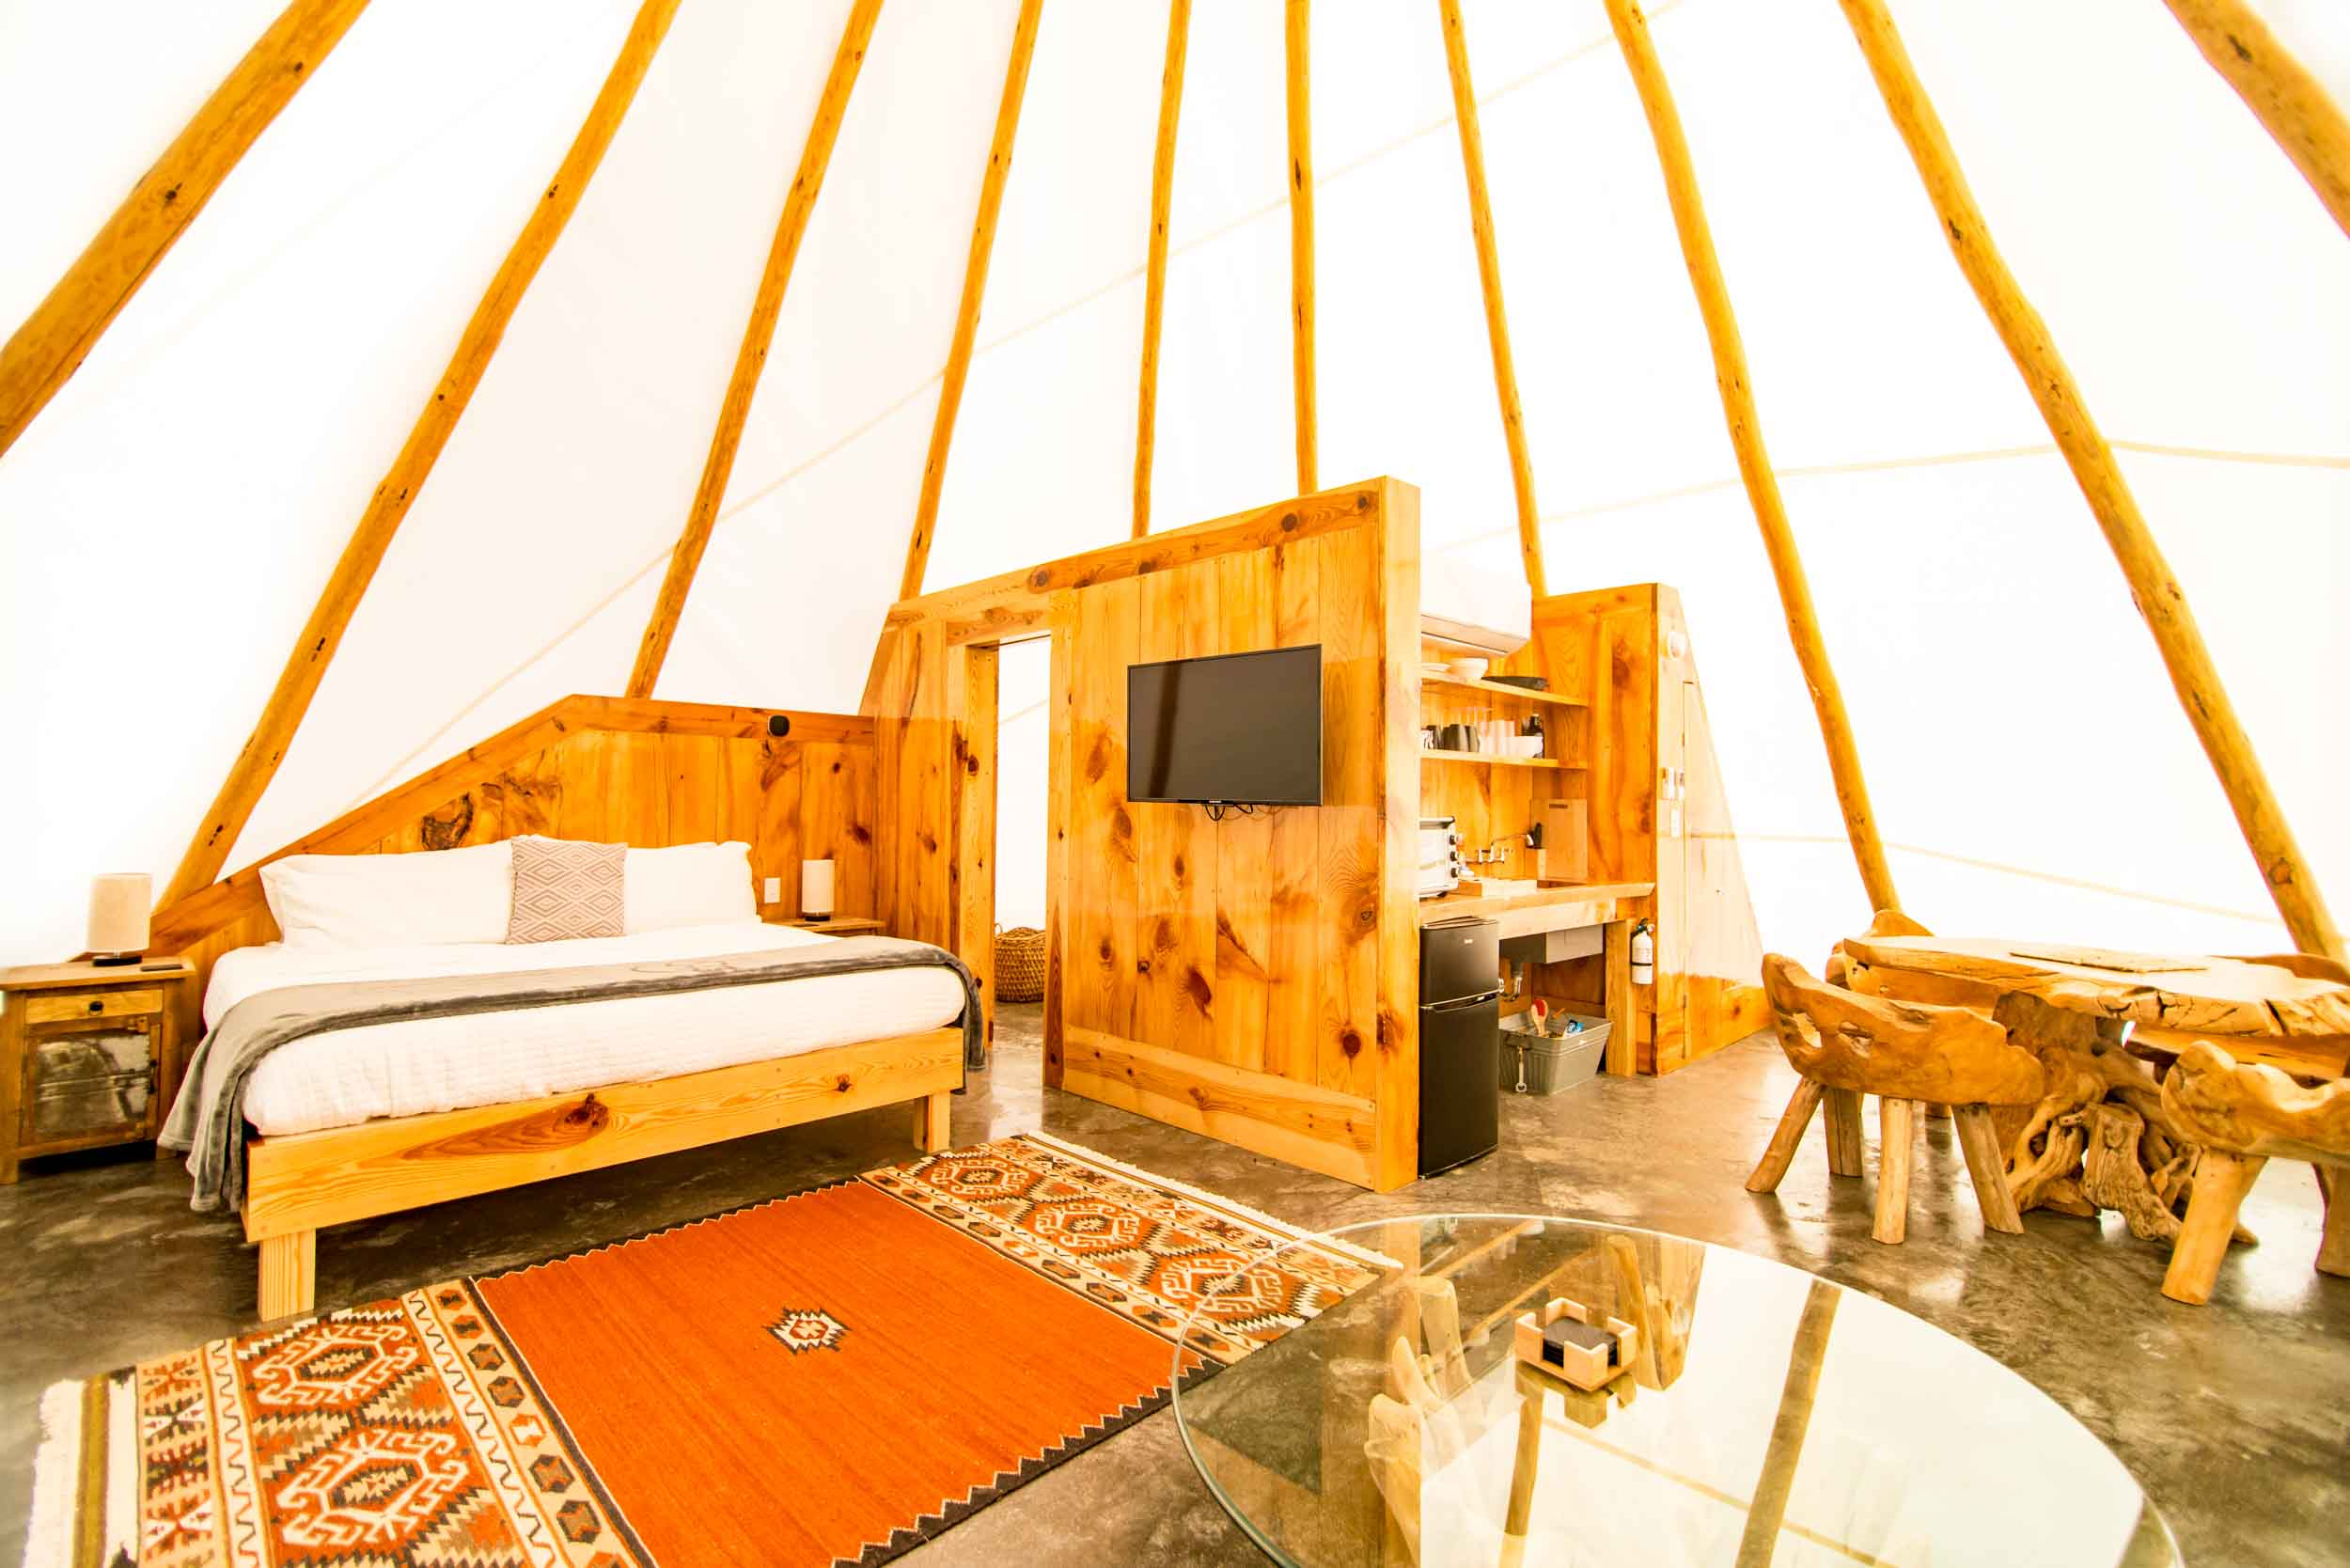 architecture+photographer+tipis+interiors+photography+airbnb+photo-10.jpg